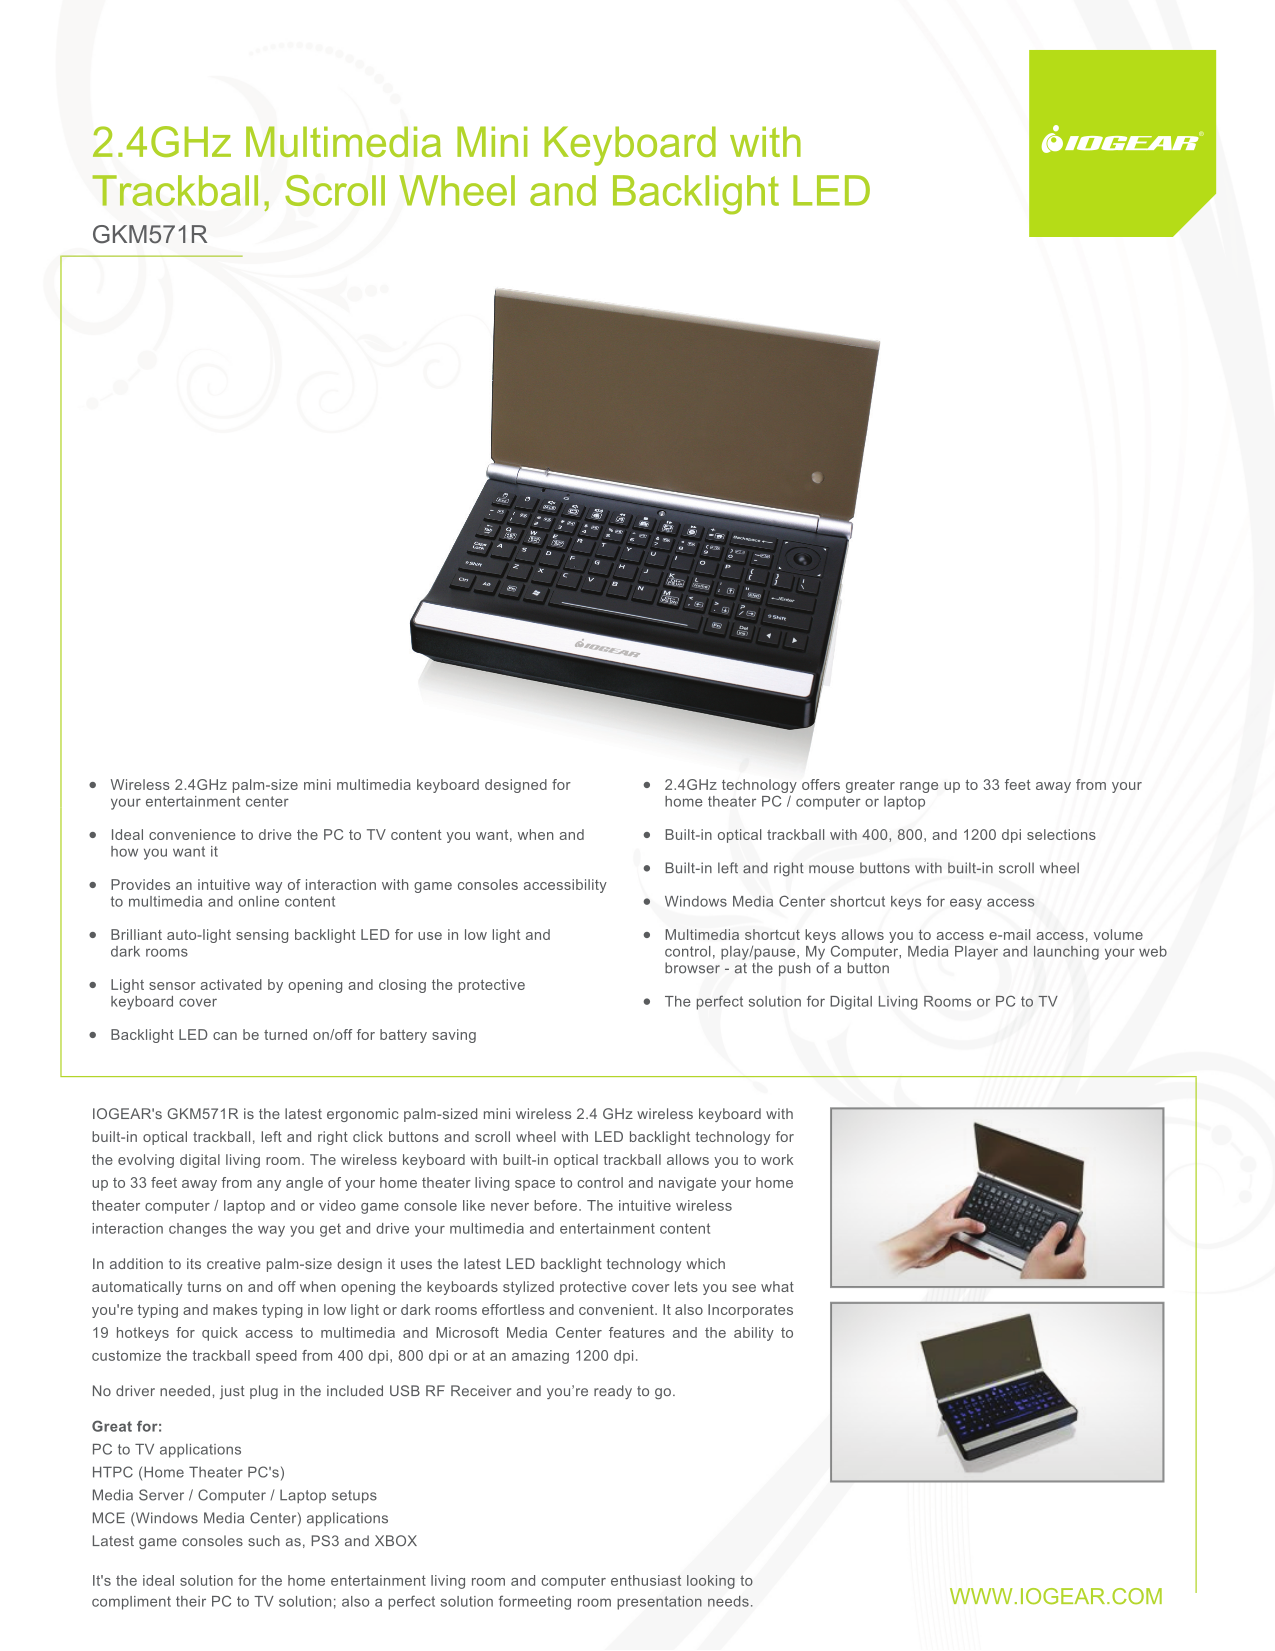 pdf for IOGEAR Keyboard GKM571R manual